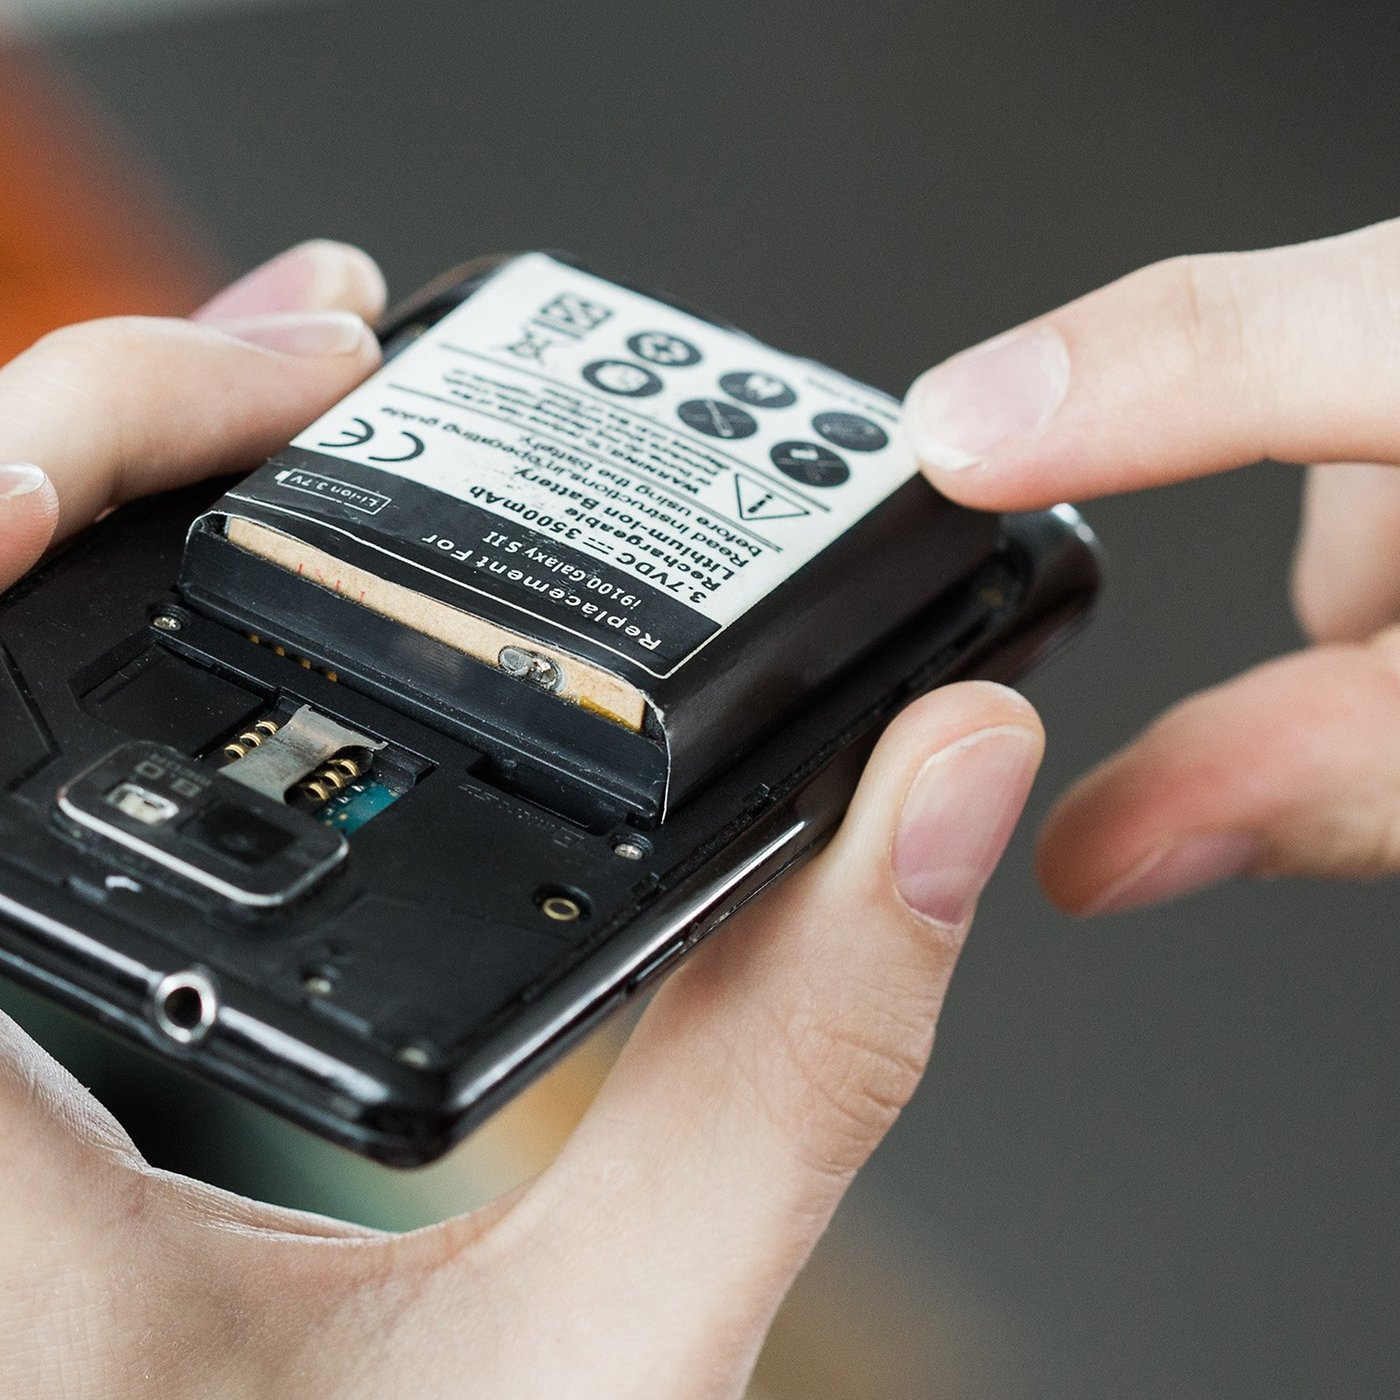 Why smartphones overheat, and how to stop it | AndroidPIT